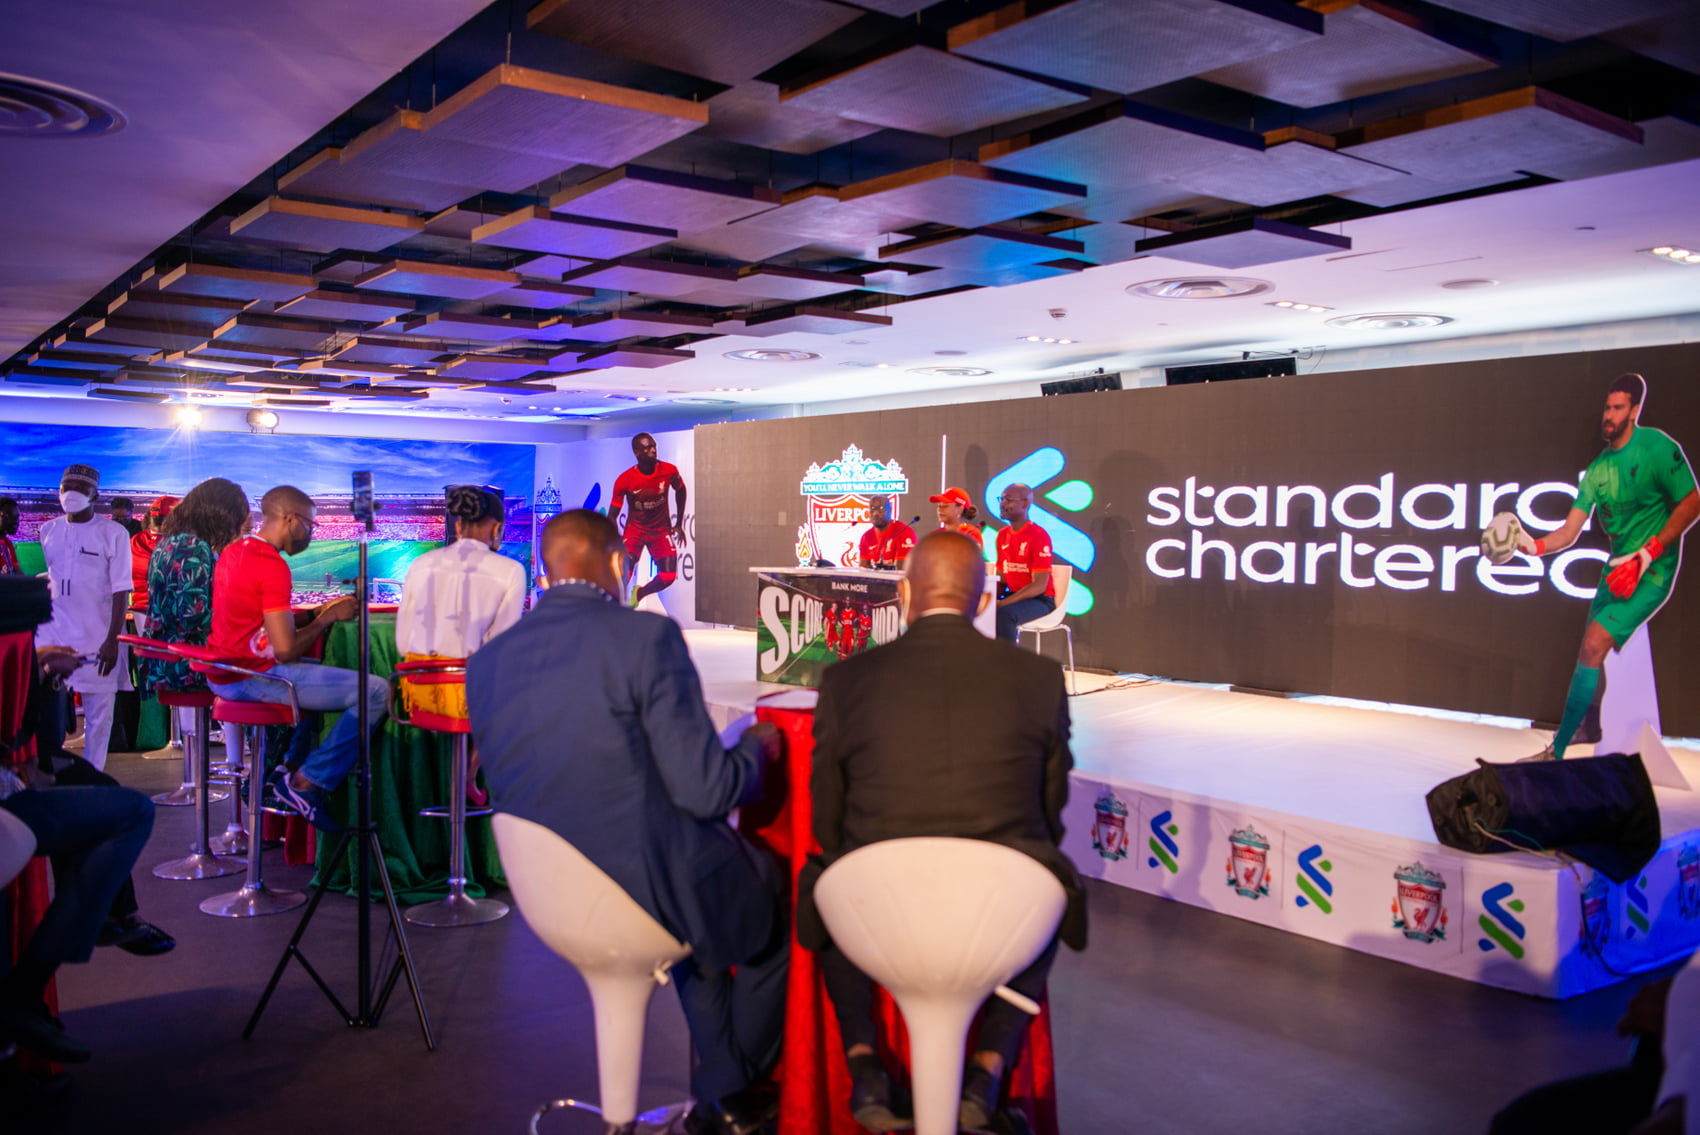 Standard Chartered customers gain access to exclusive LFC prizes through 'bank more, score more'